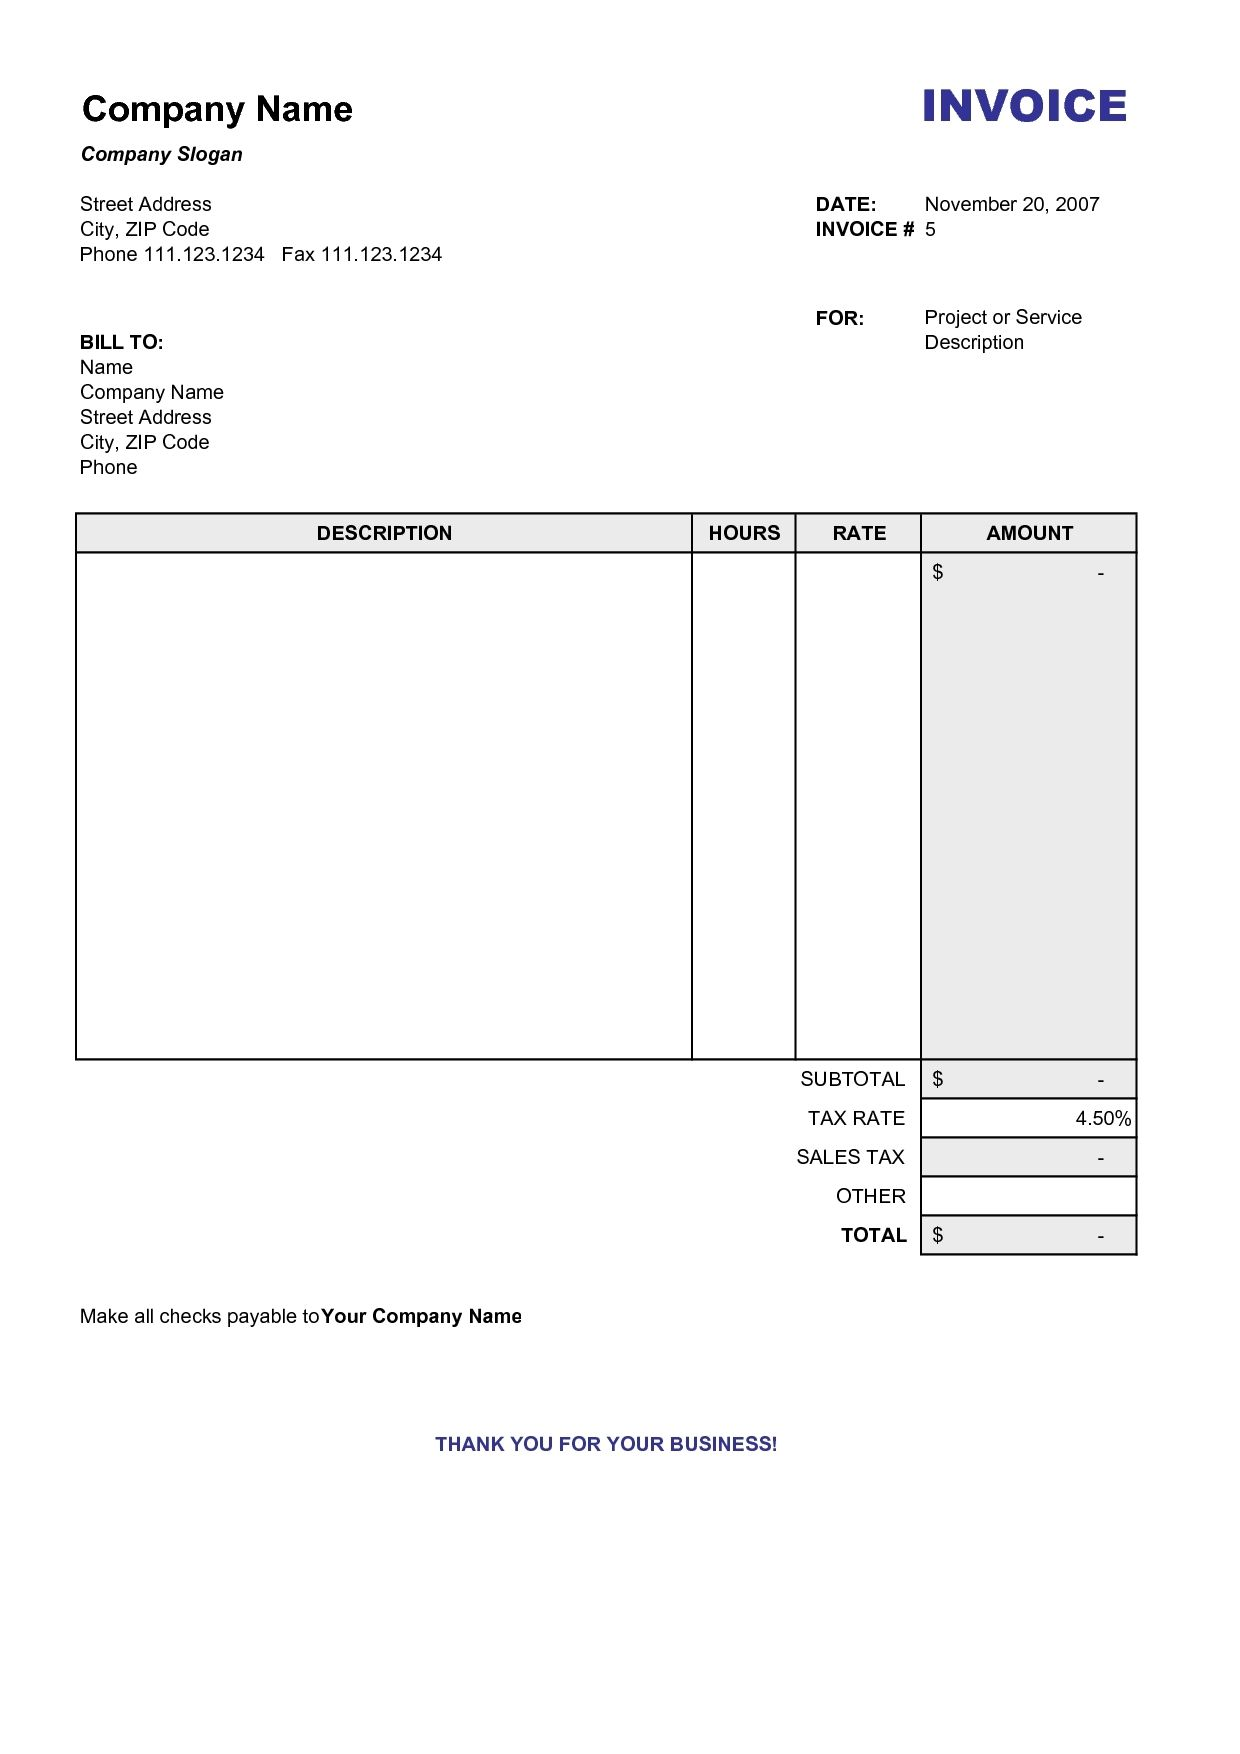 Copy Of A Blank Invoice Invoice Template Free 2016 Copy Of Blank Invoice  Blank Invoices Free